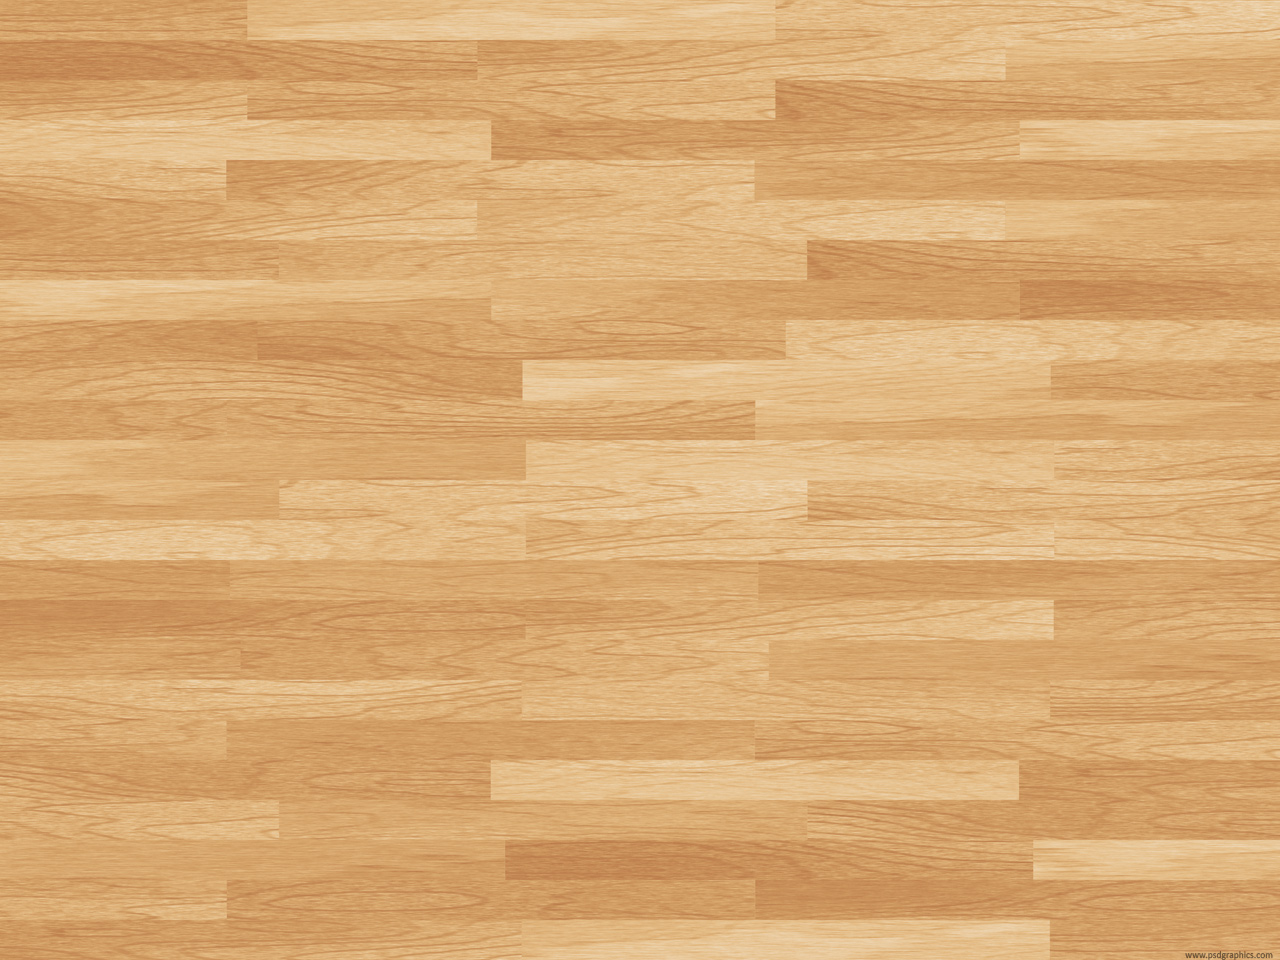 Basketball floor texture psdgraphics for At floor or on floor